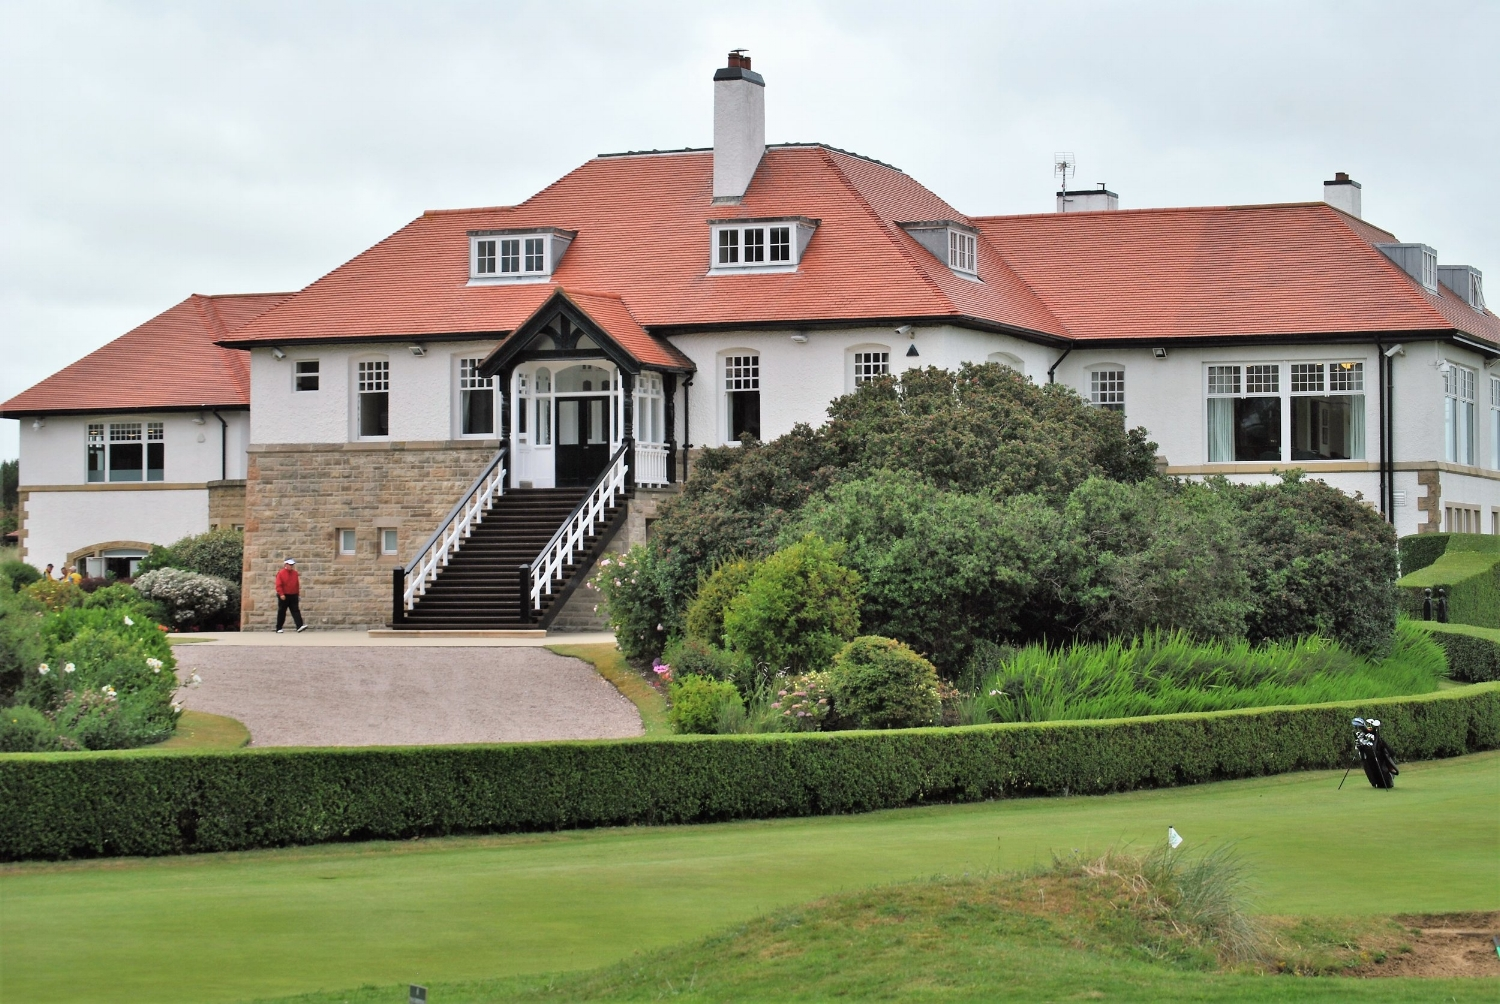 The club house at Royal County Down